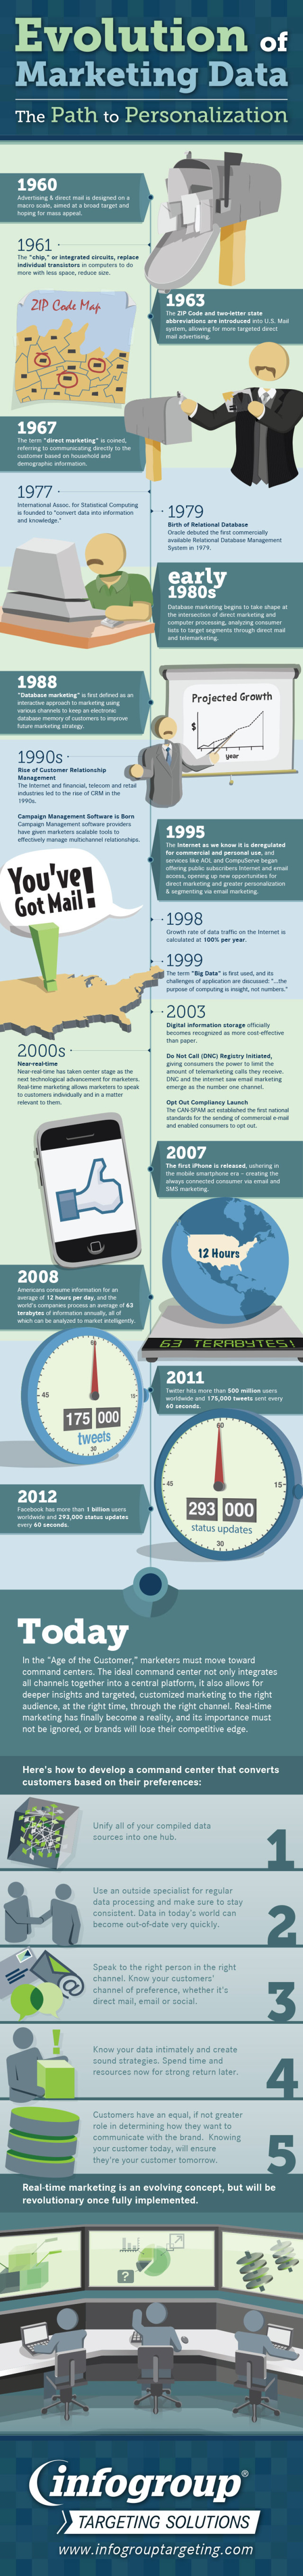 ITS evolution of marketing infographic